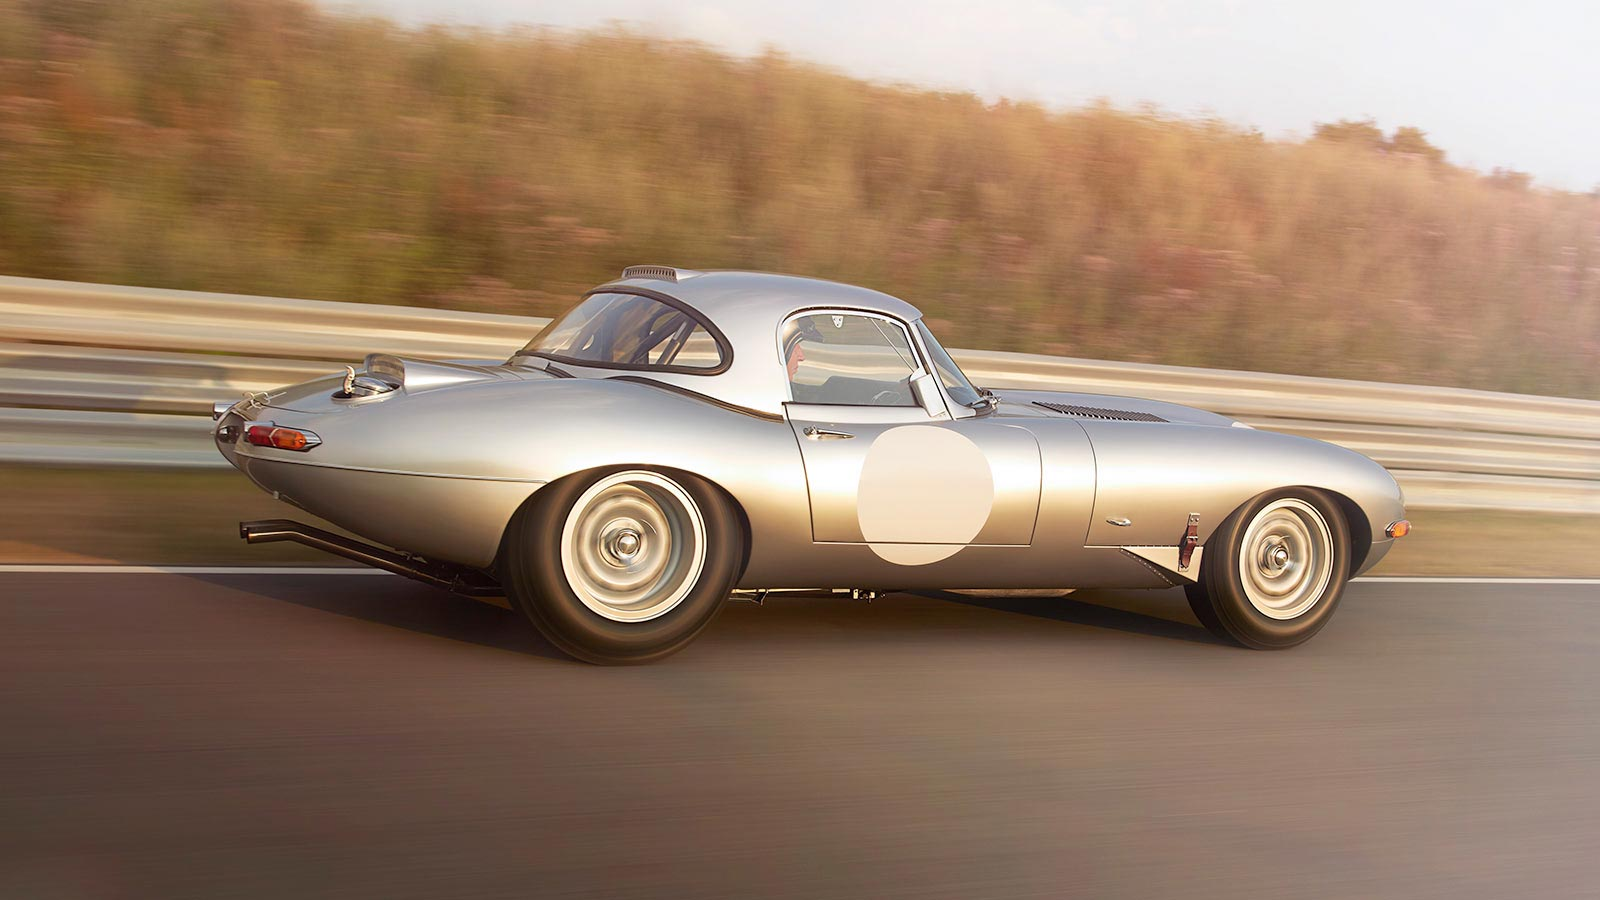 Jaguar Lightweight E-TYPE from the side on a race track.